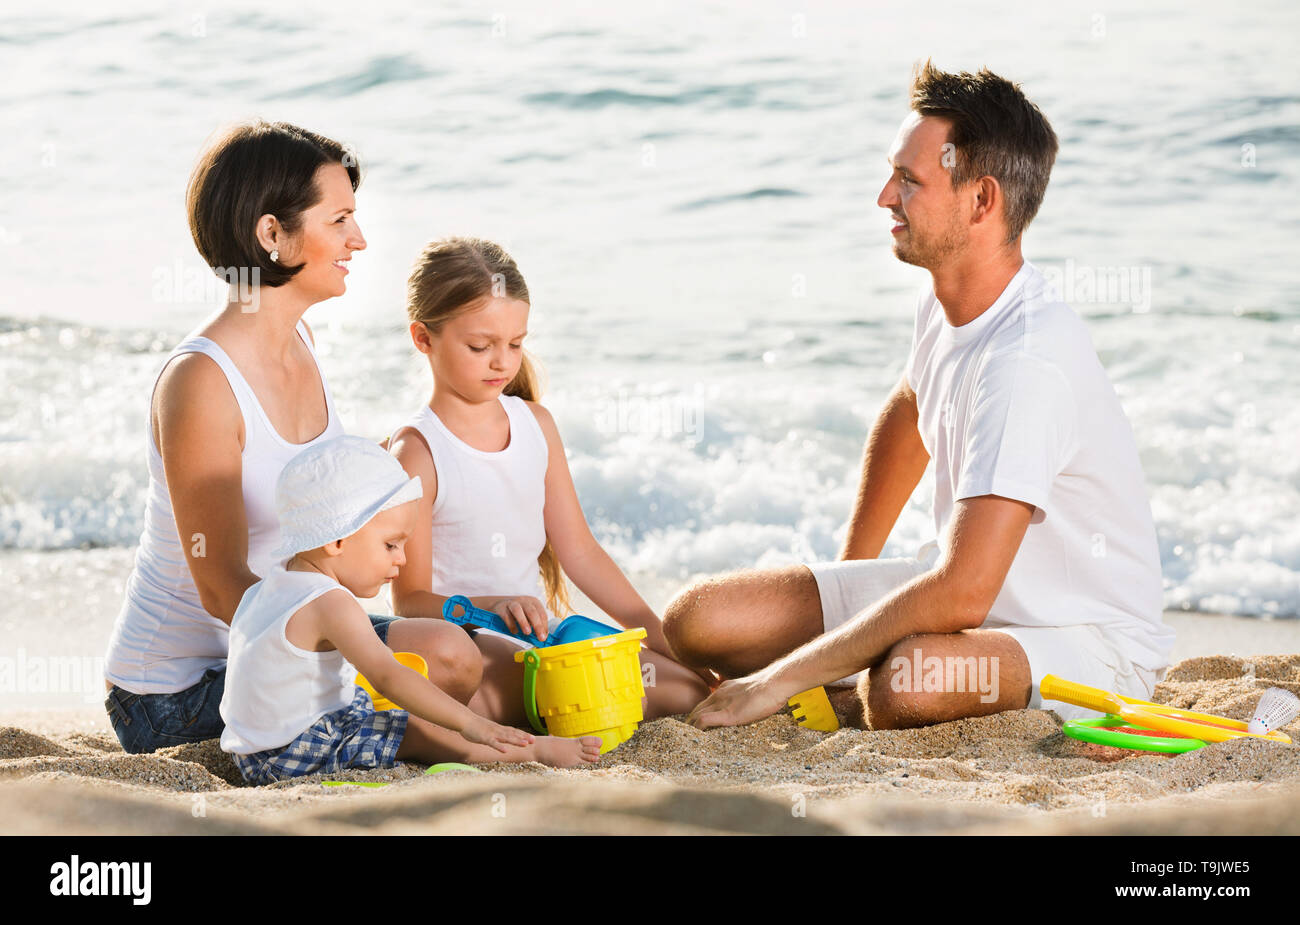 Cheerful positive  parents with two kids playing with sand toys on beach - Stock Image